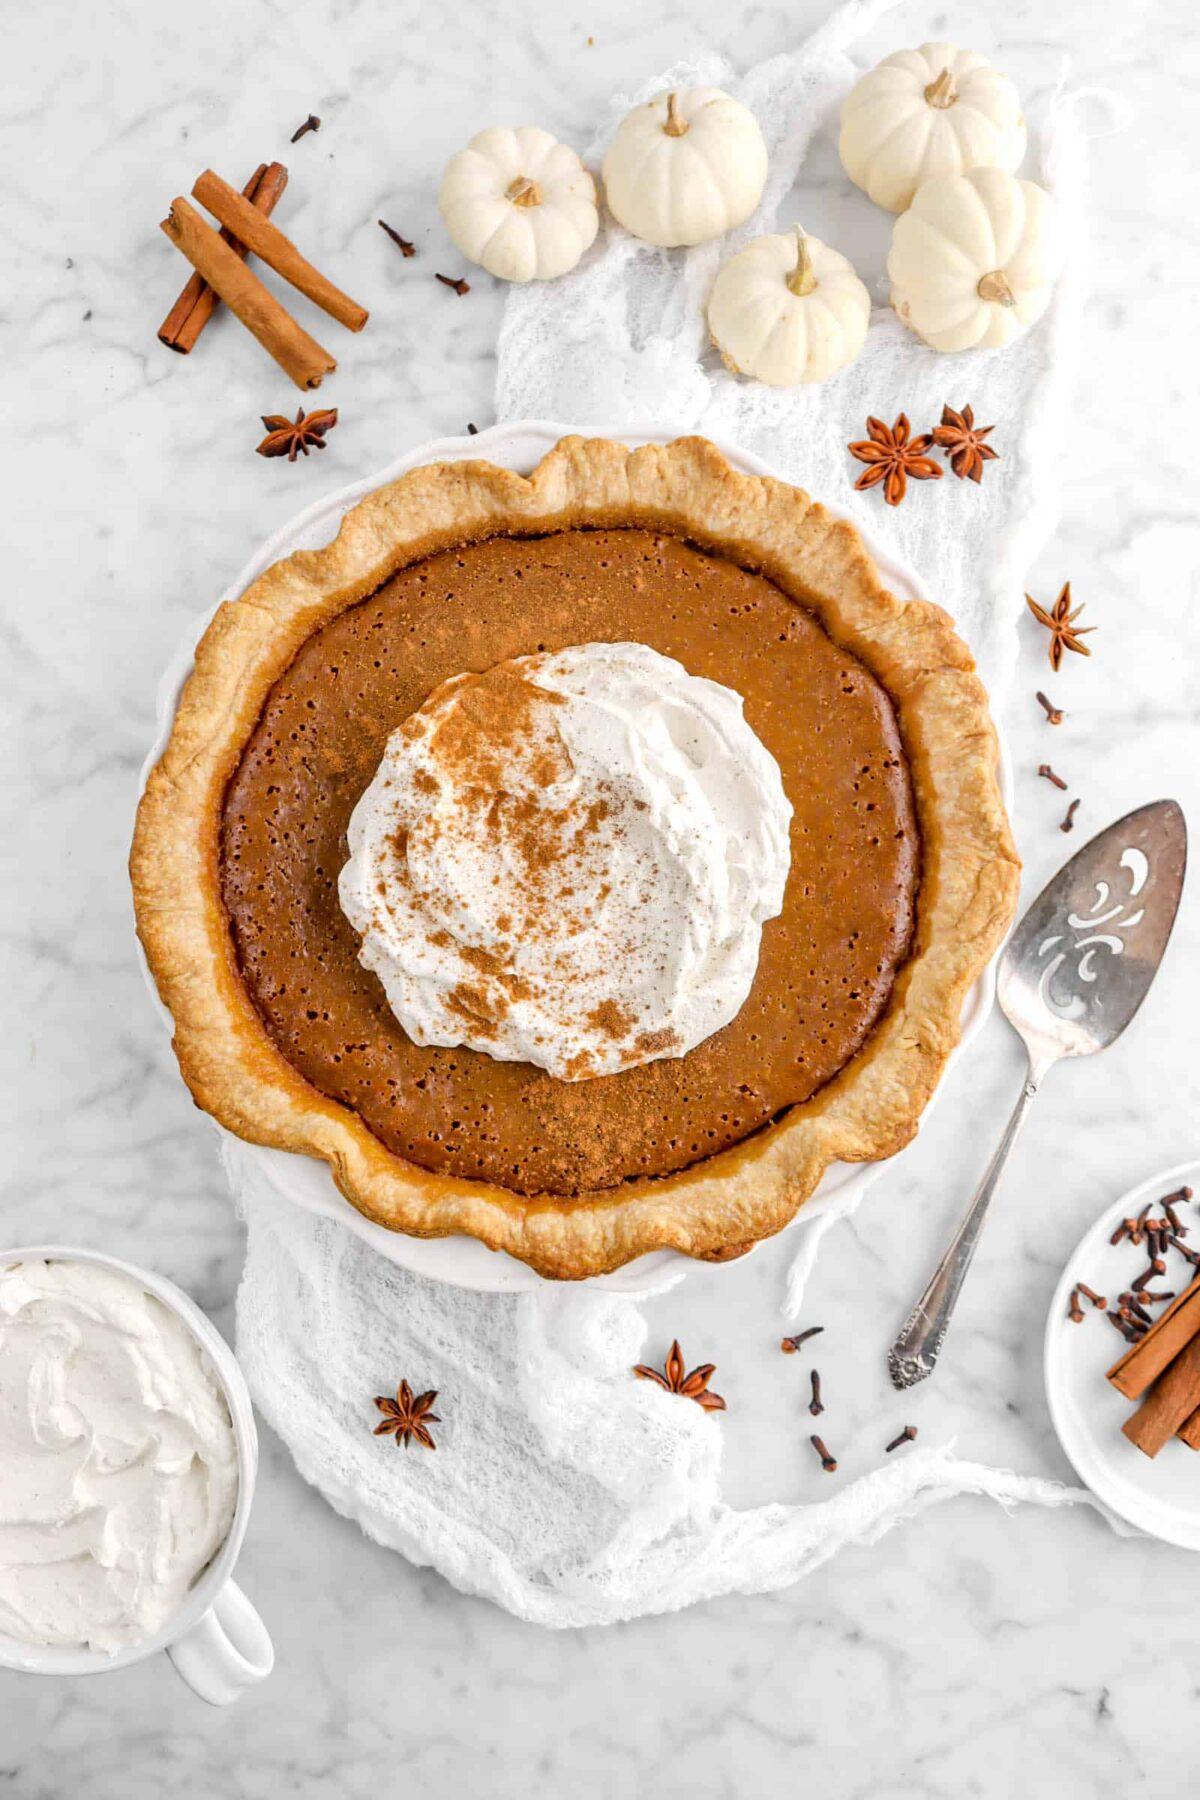 pumpkin pie on marble counter with mini pumpkins and whole spices